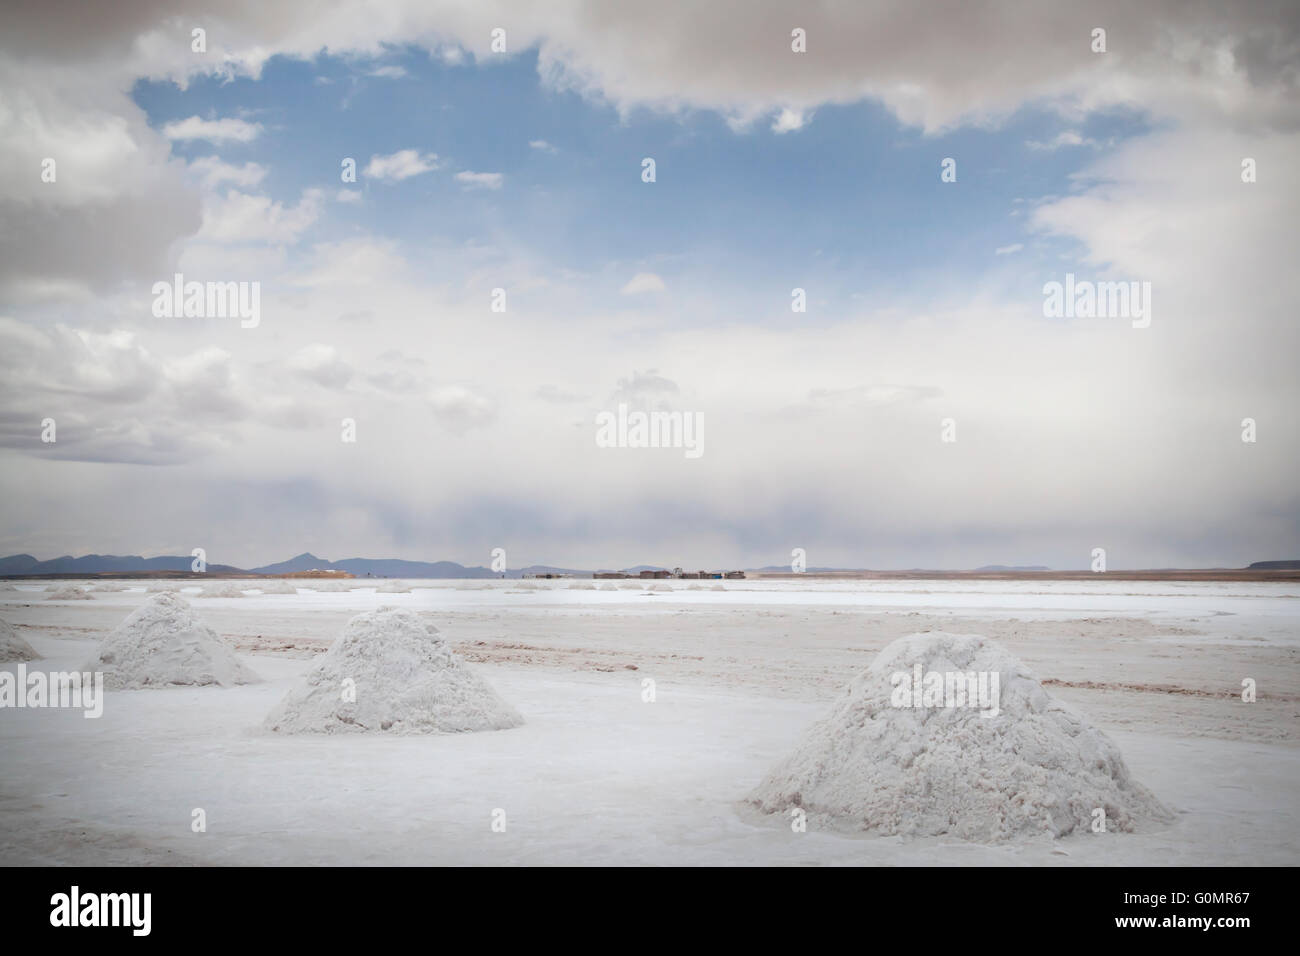 A break in the clouds shows blue sky above the Bolivian salt plains at Salar de Uyuni - Stock Image